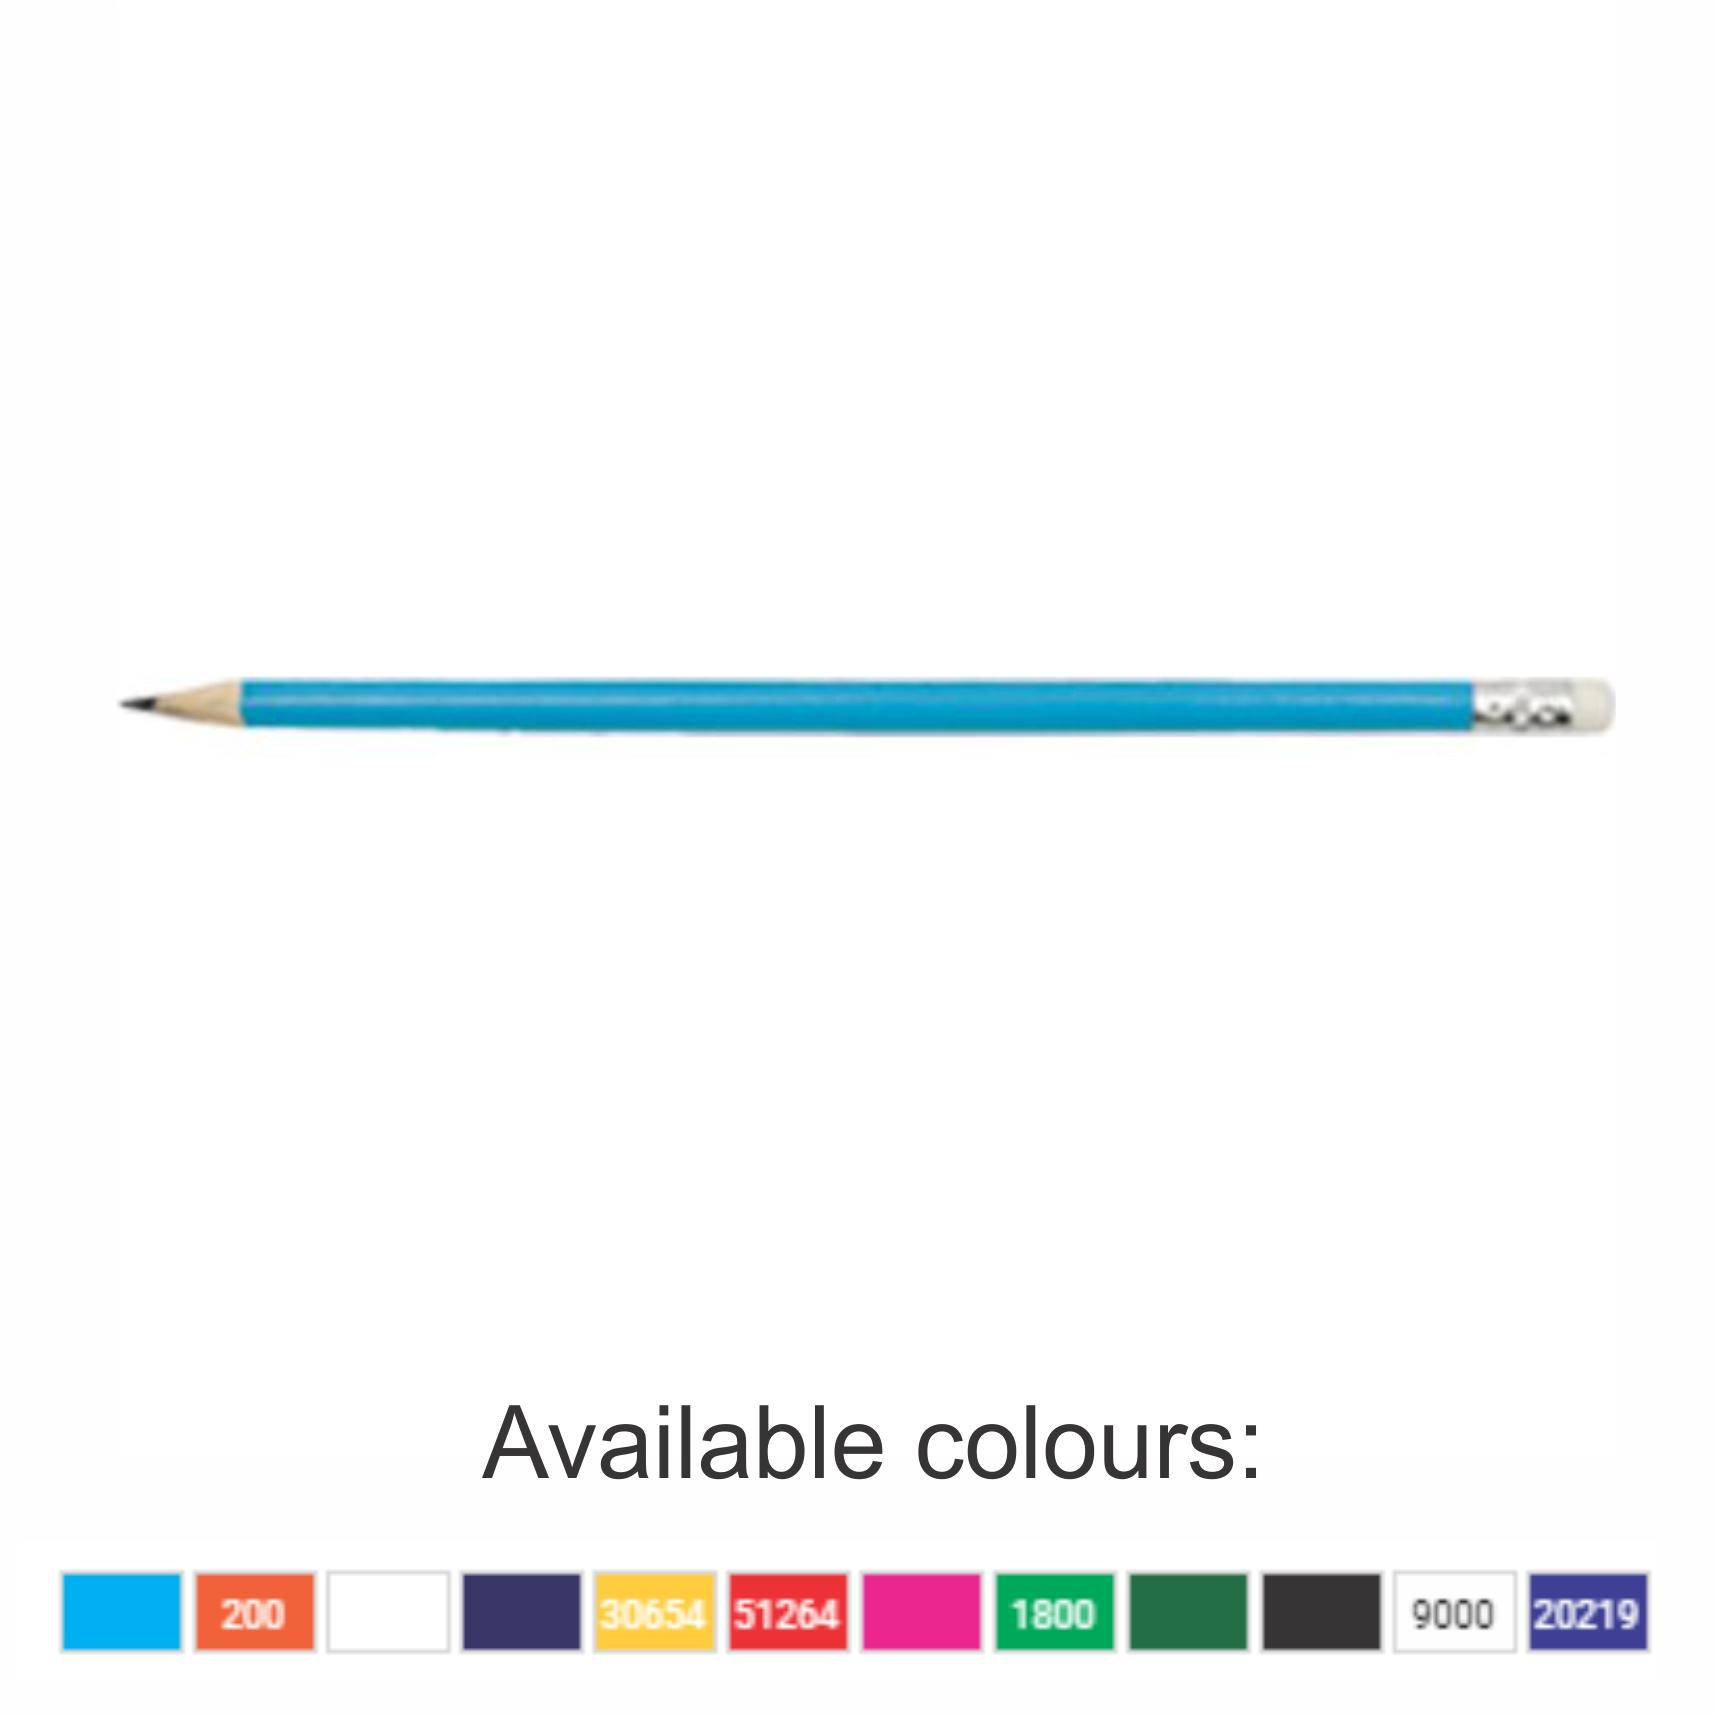 Pencils With 1 Colour Print